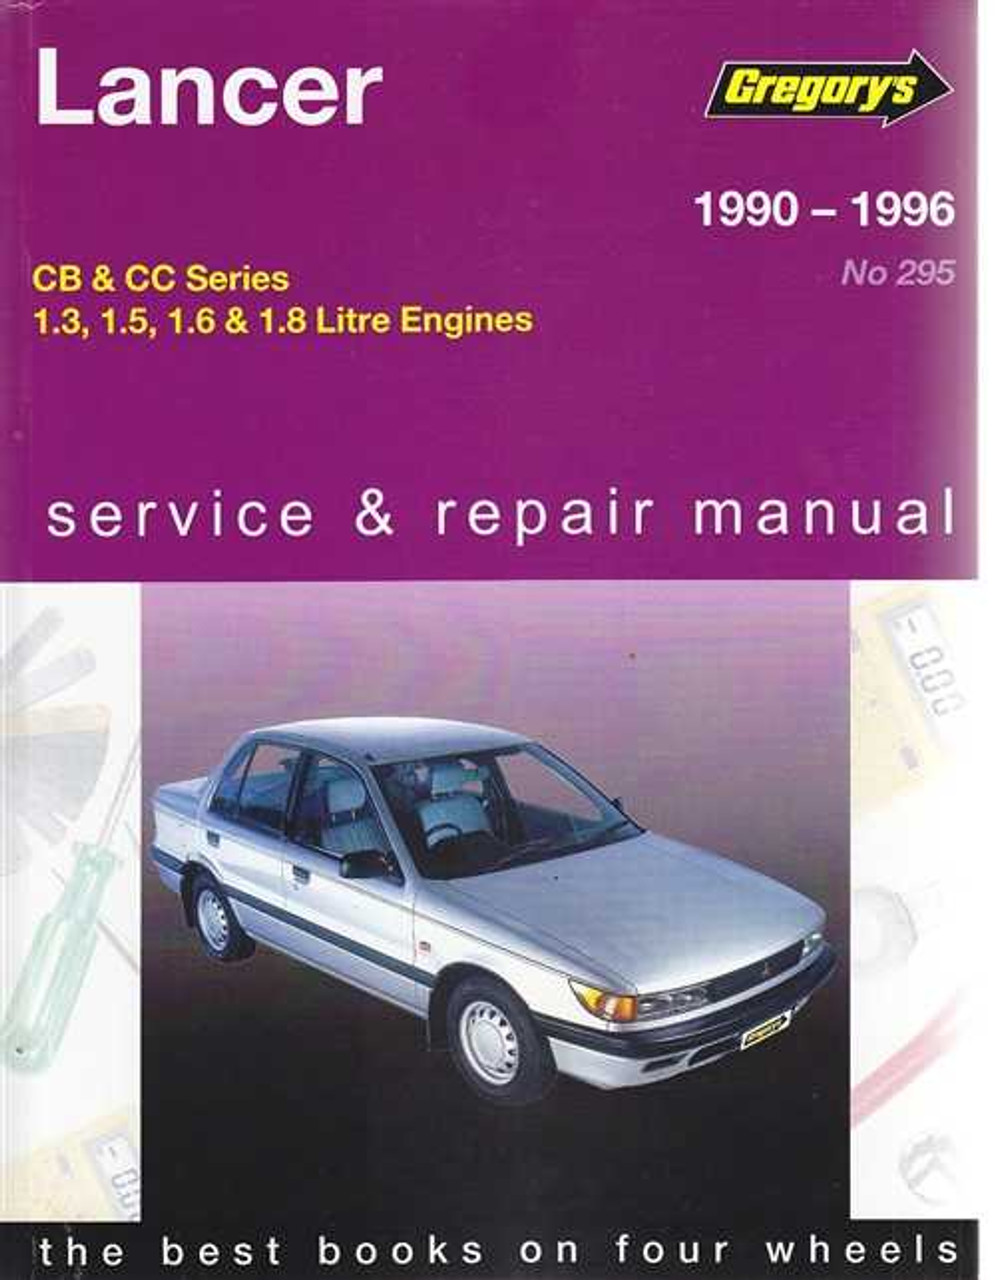 mitsubishi lancer cb cc petrol 1990 1996 workshop manual rh automotobookshop com au Mitsubishi Lancer Evolution Mitsubishi Lancer Evolution